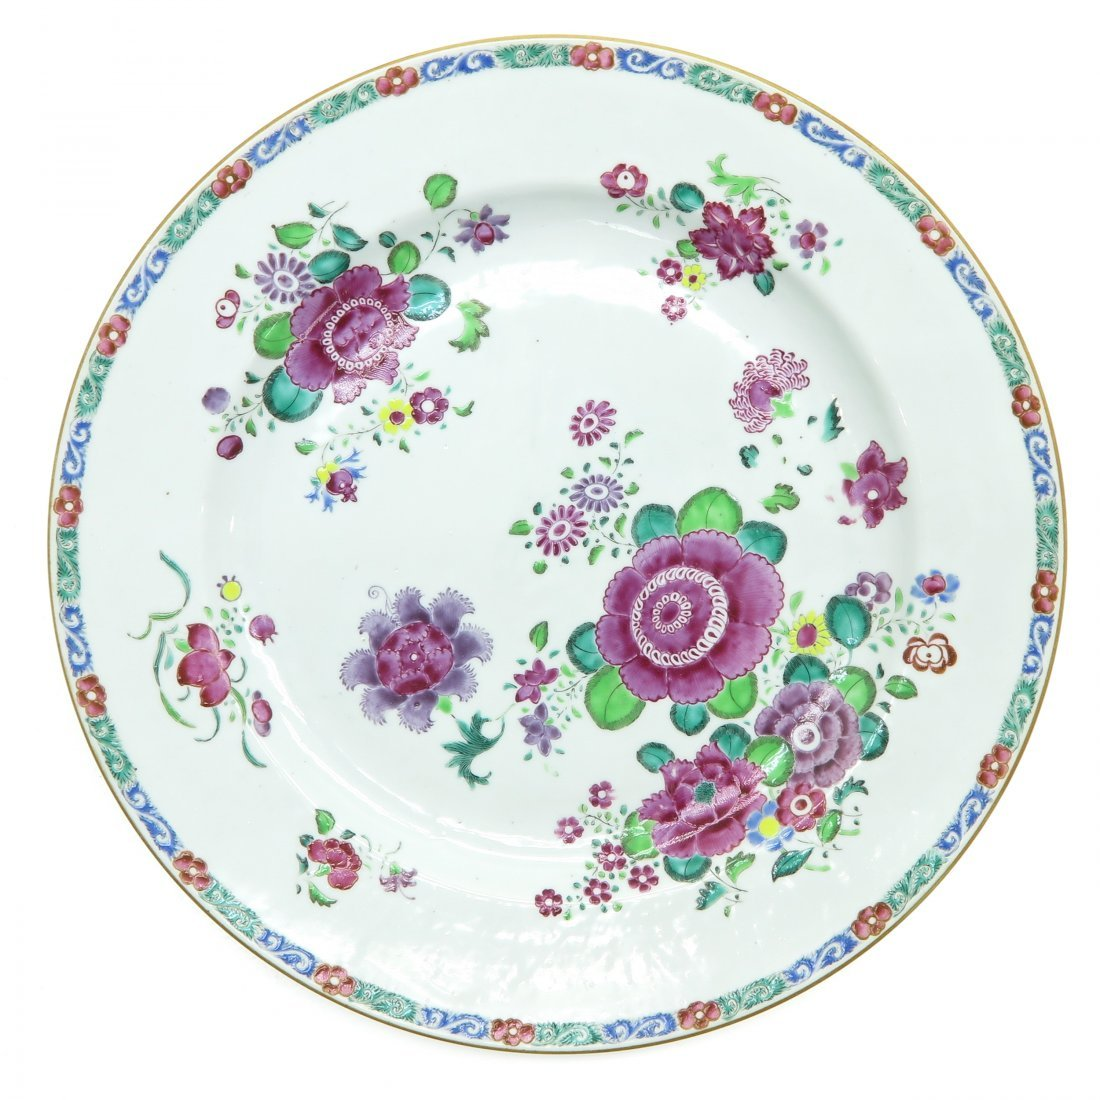 A Large 18th Century China Porcelain Plate